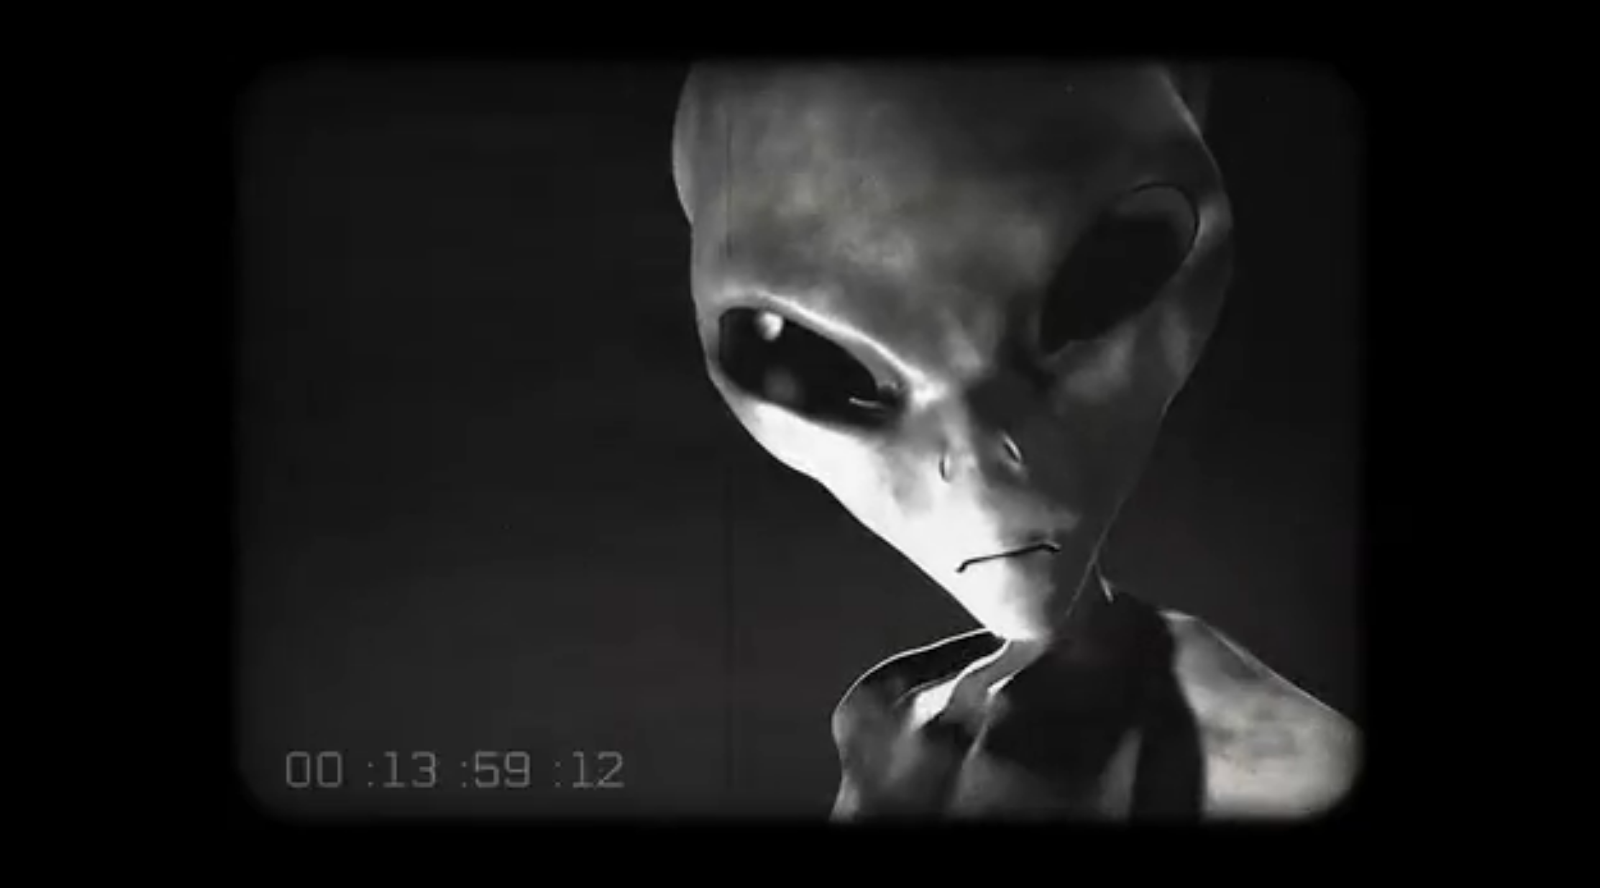 the existence of aliens